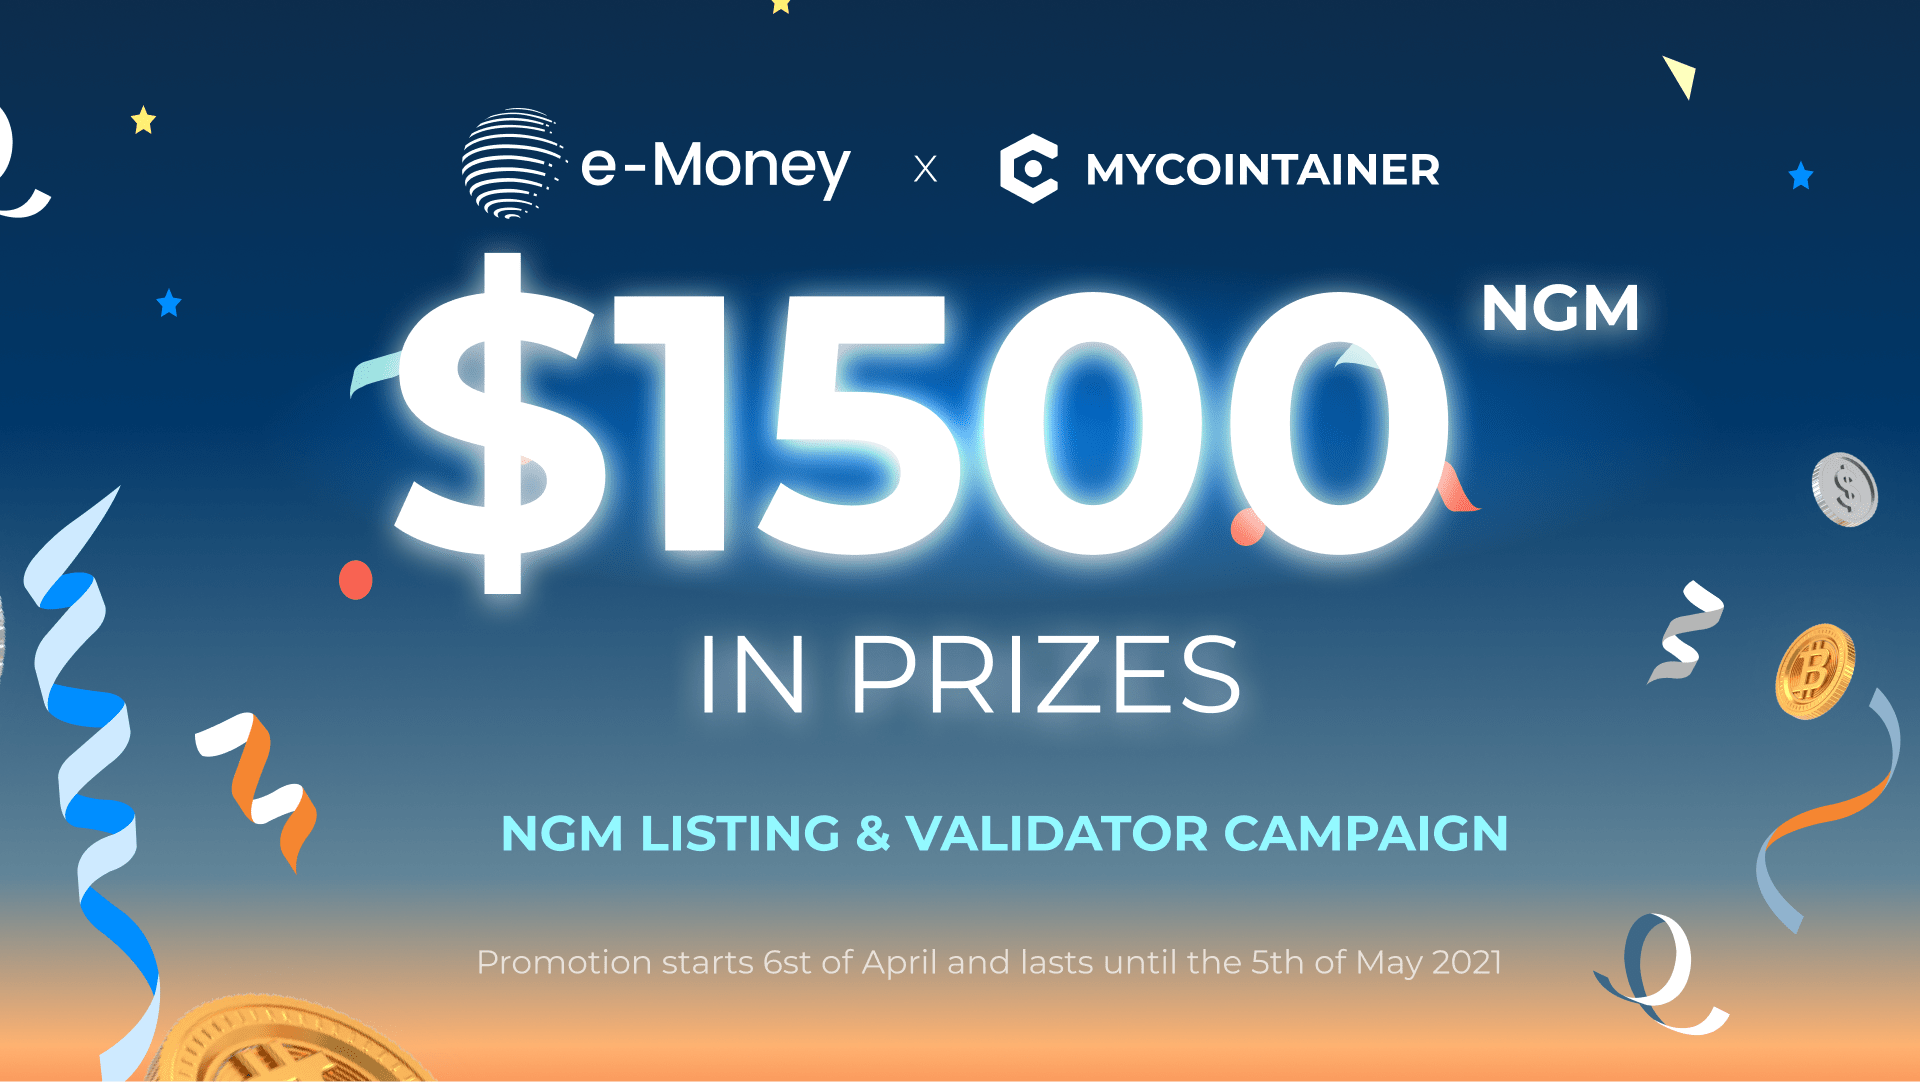 $1,500 E-Money (NGM) BY MYCOINTAINER GIVEAWAY Giveaway Image